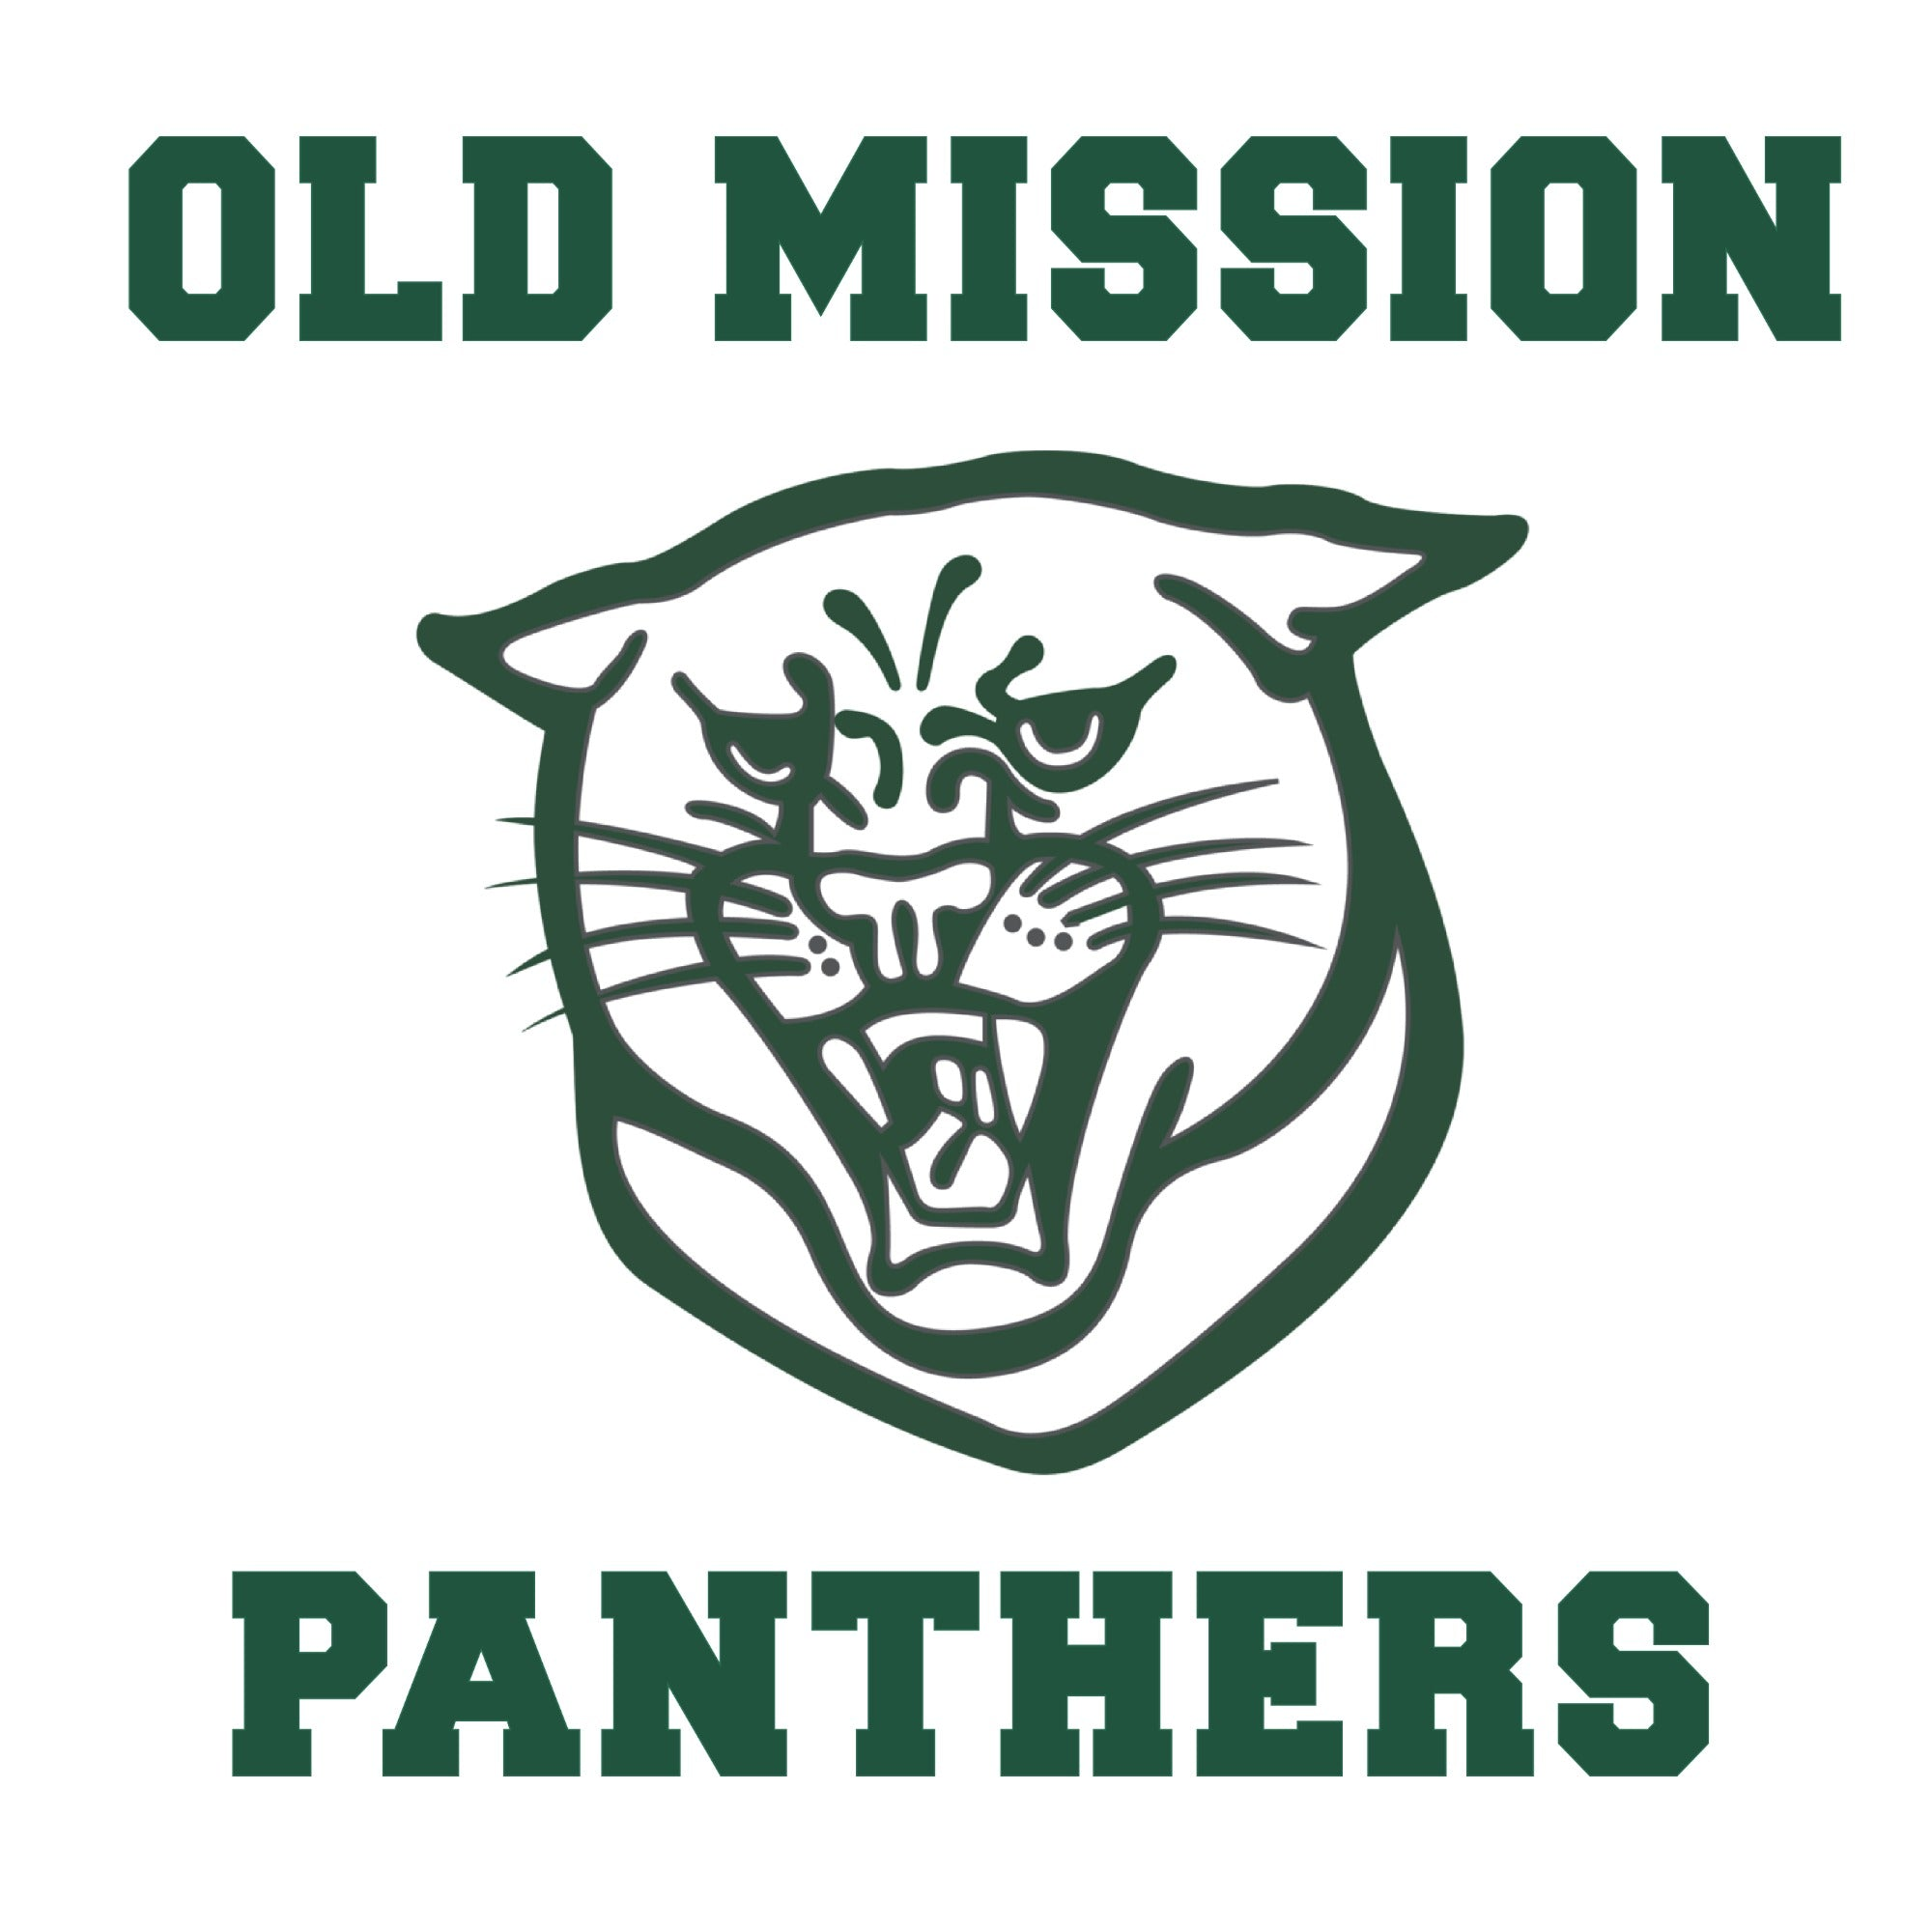 Old Mission Panthers Square Vinyl Sticker